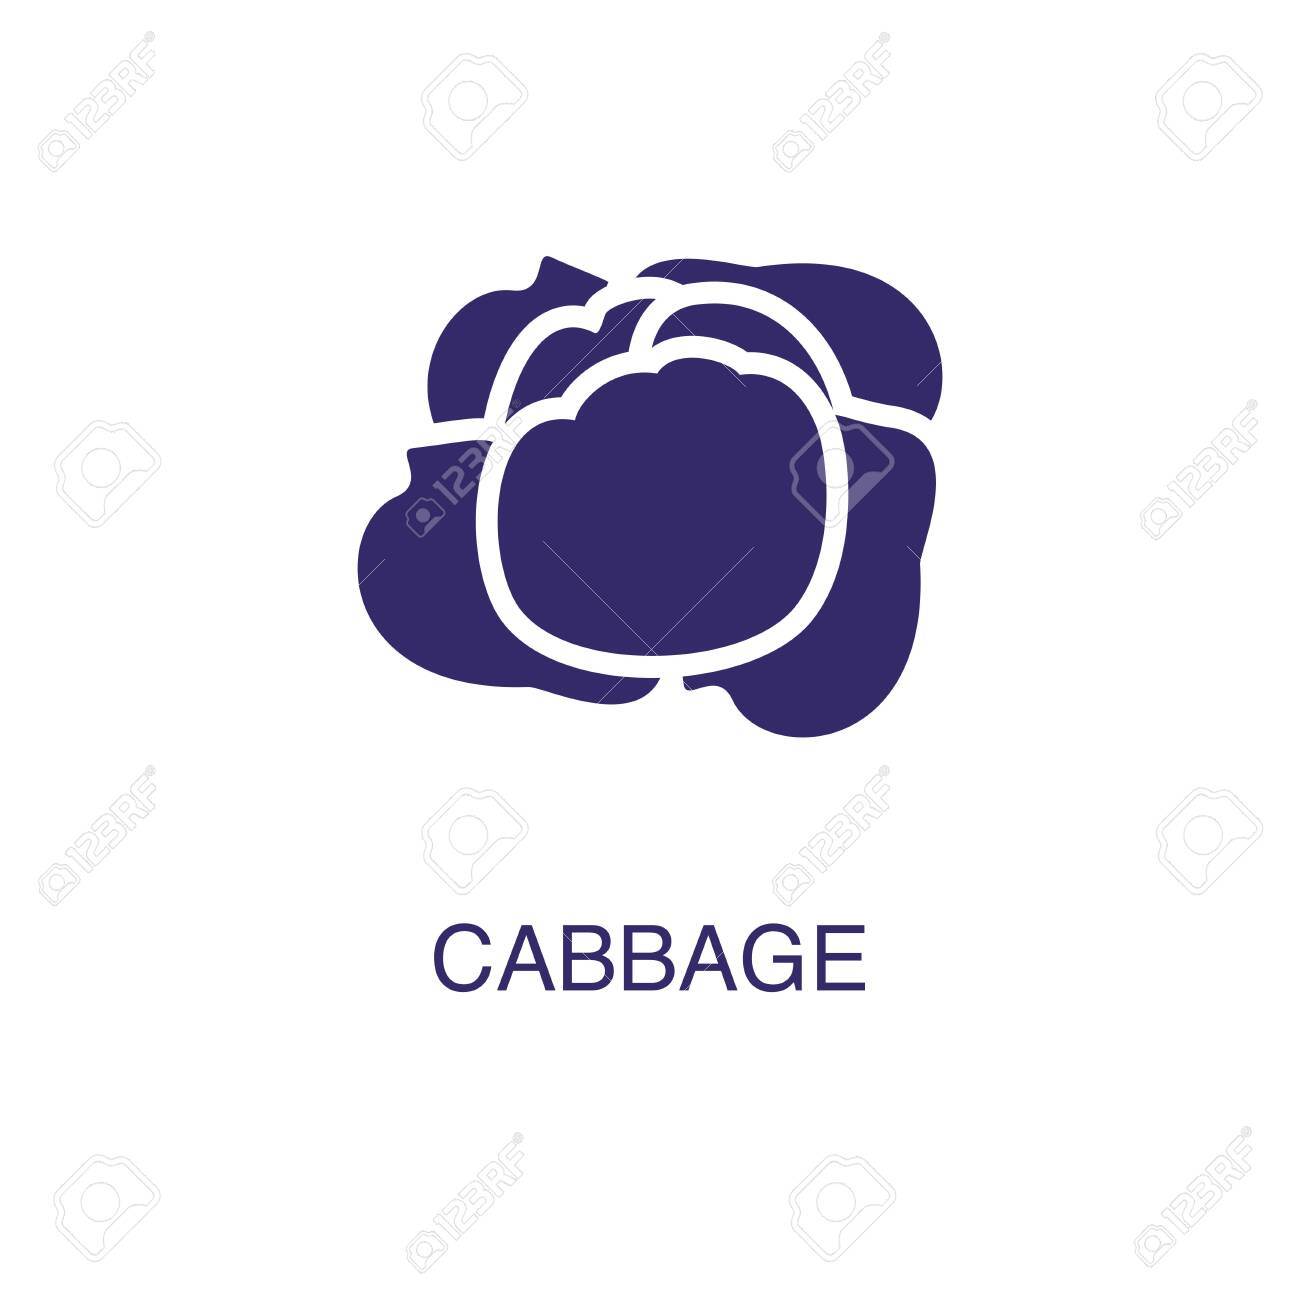 Cabbage element in flat simple style on white background. Cabbage icon, with text name concept template - 134450805